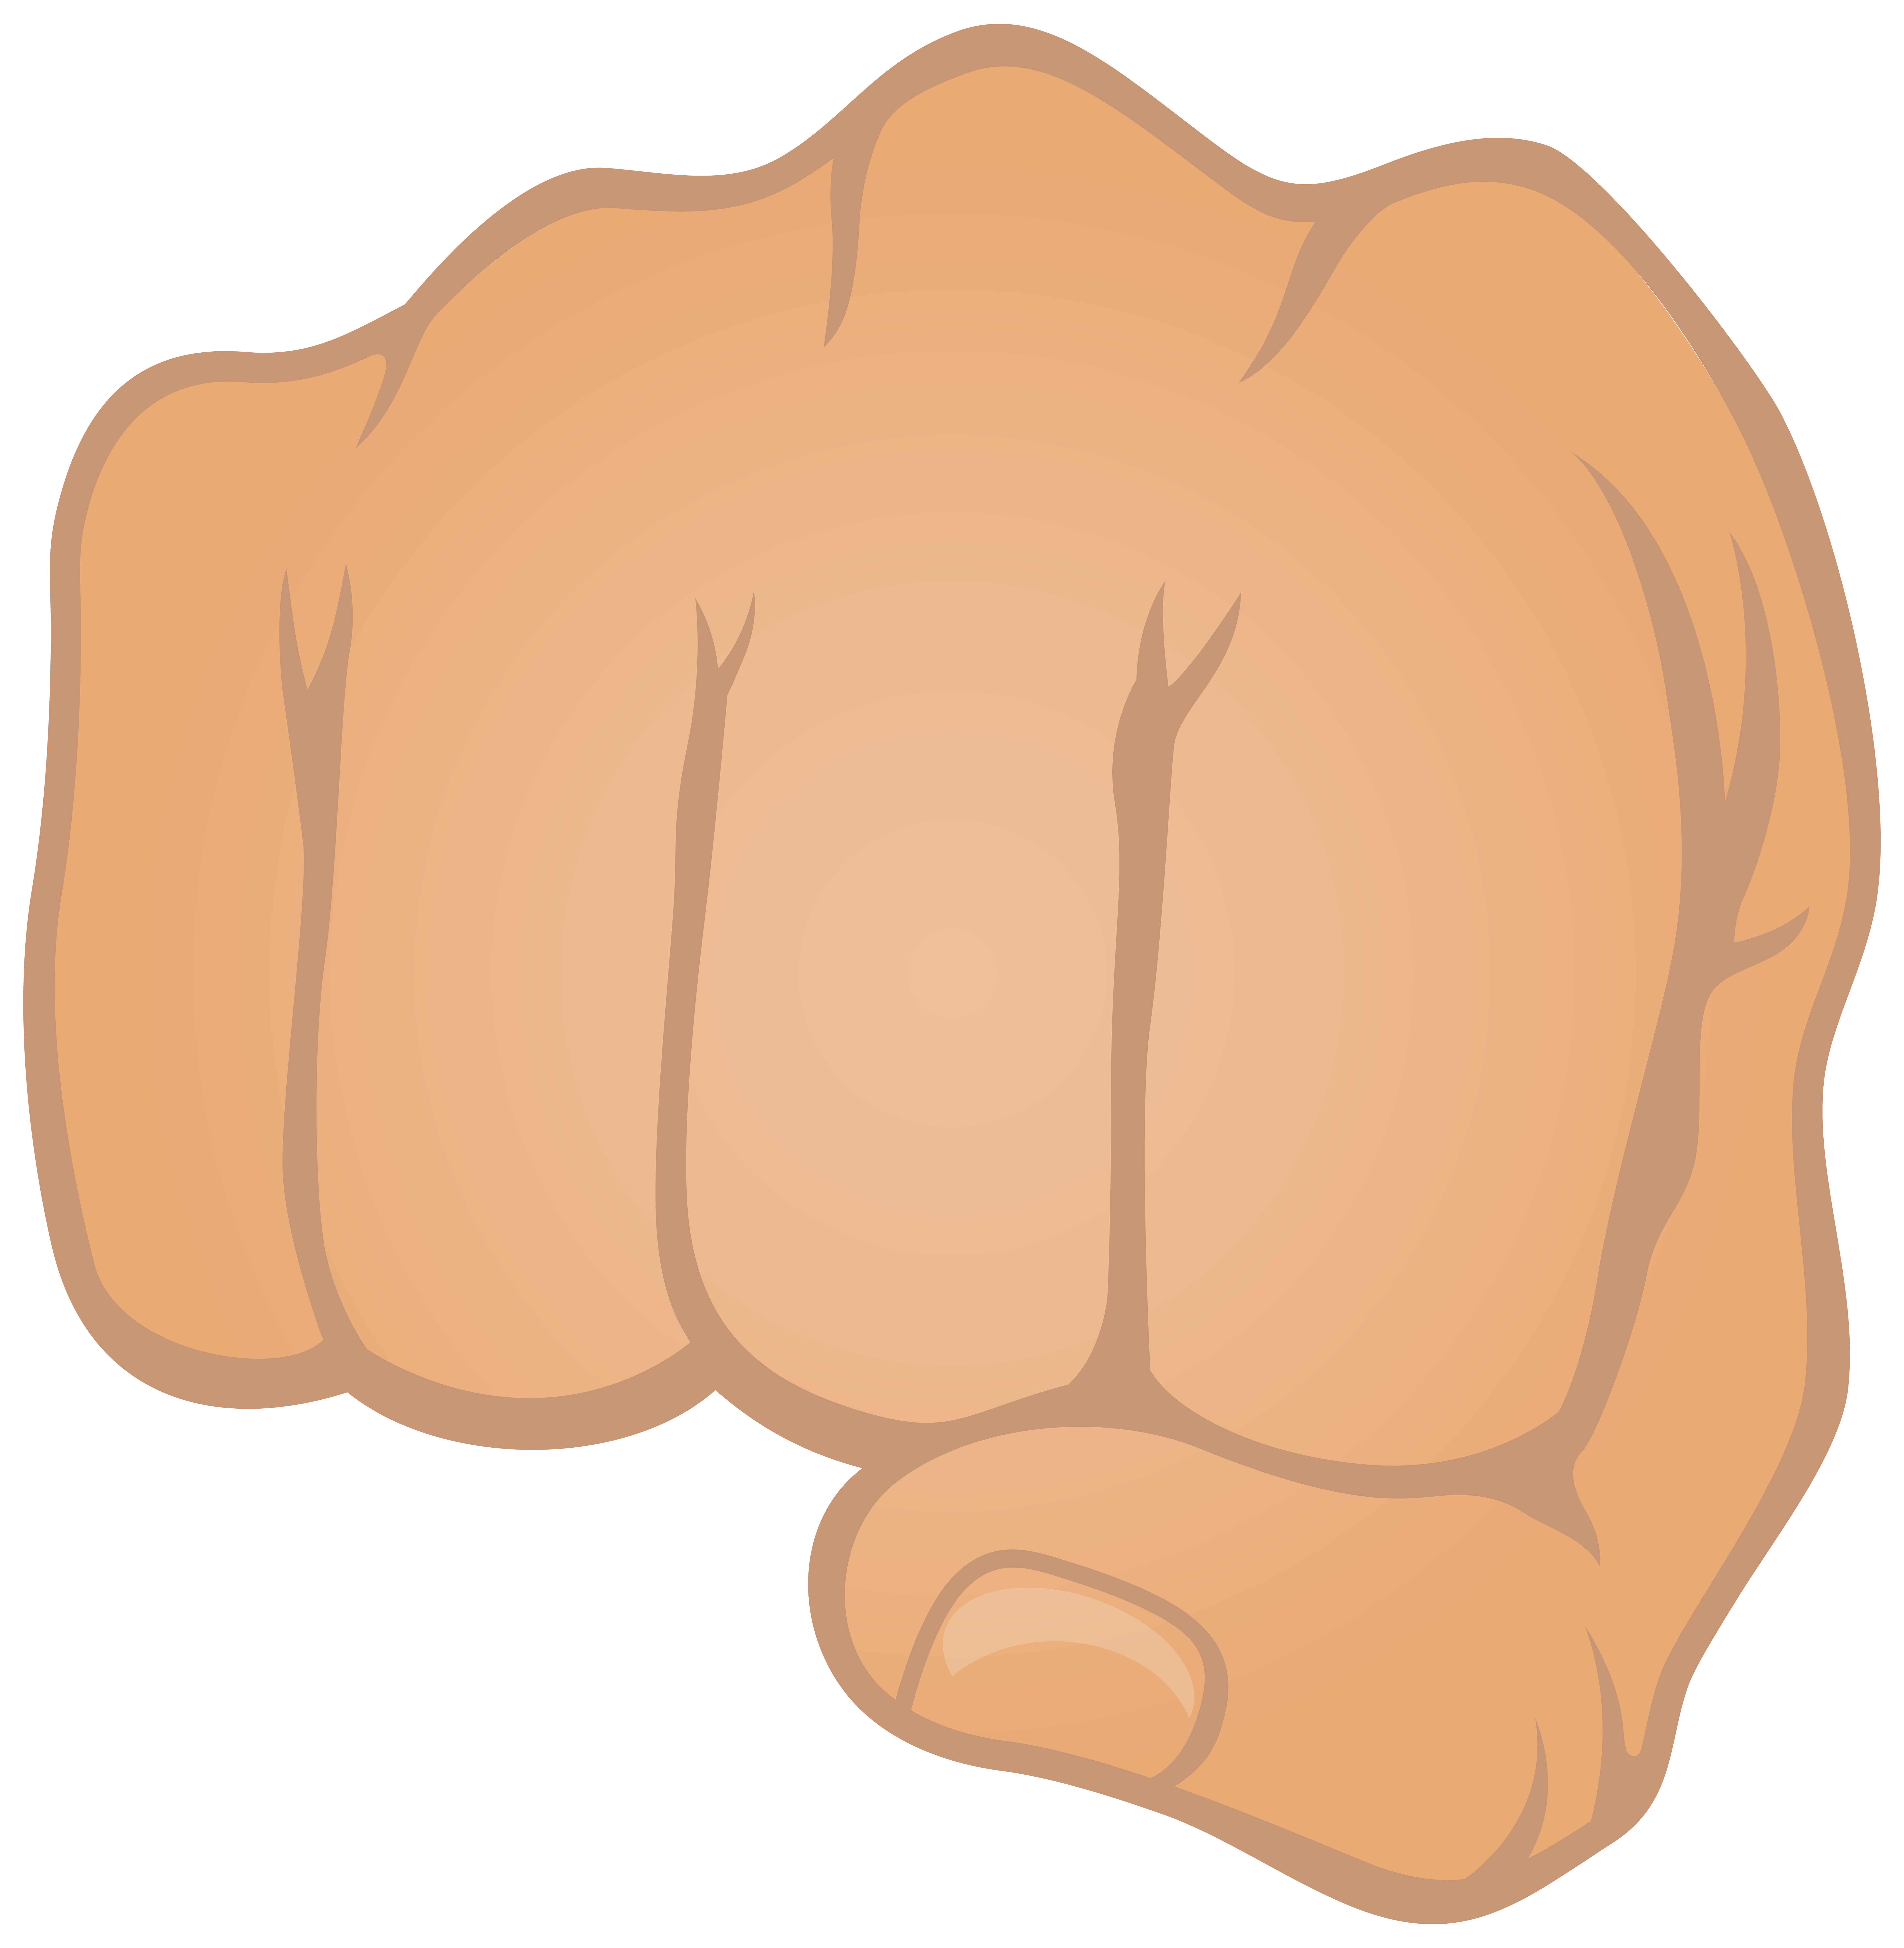 Fist clipart fist punch Fist  full size Punch